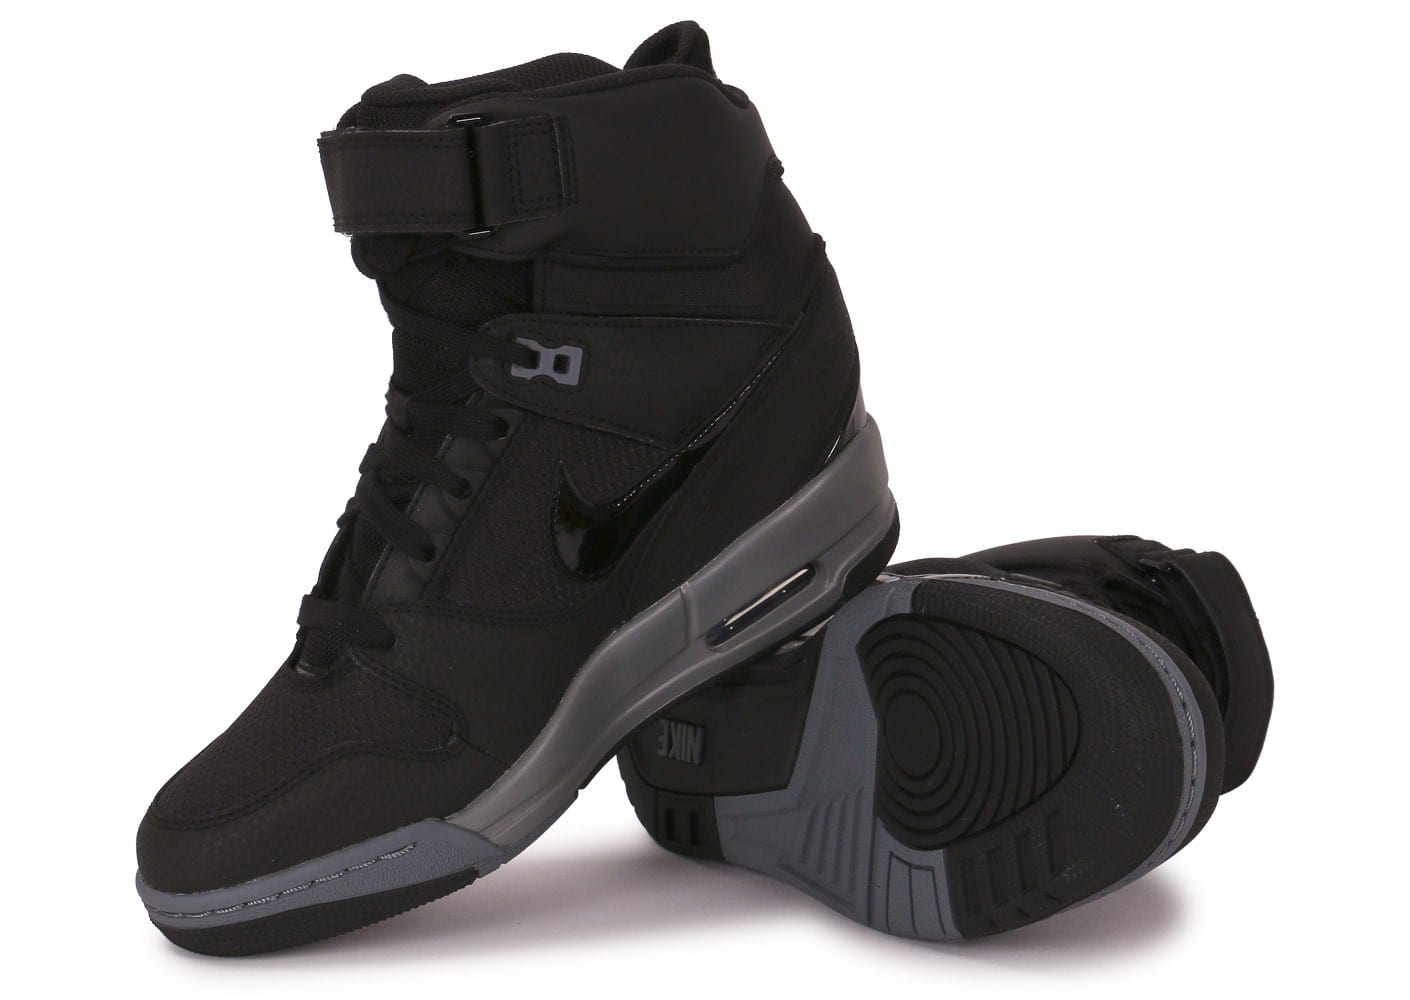 best value undefeated x pre order Nike Air Revolution Sky Hi Noire - Chaussures Chaussures ...